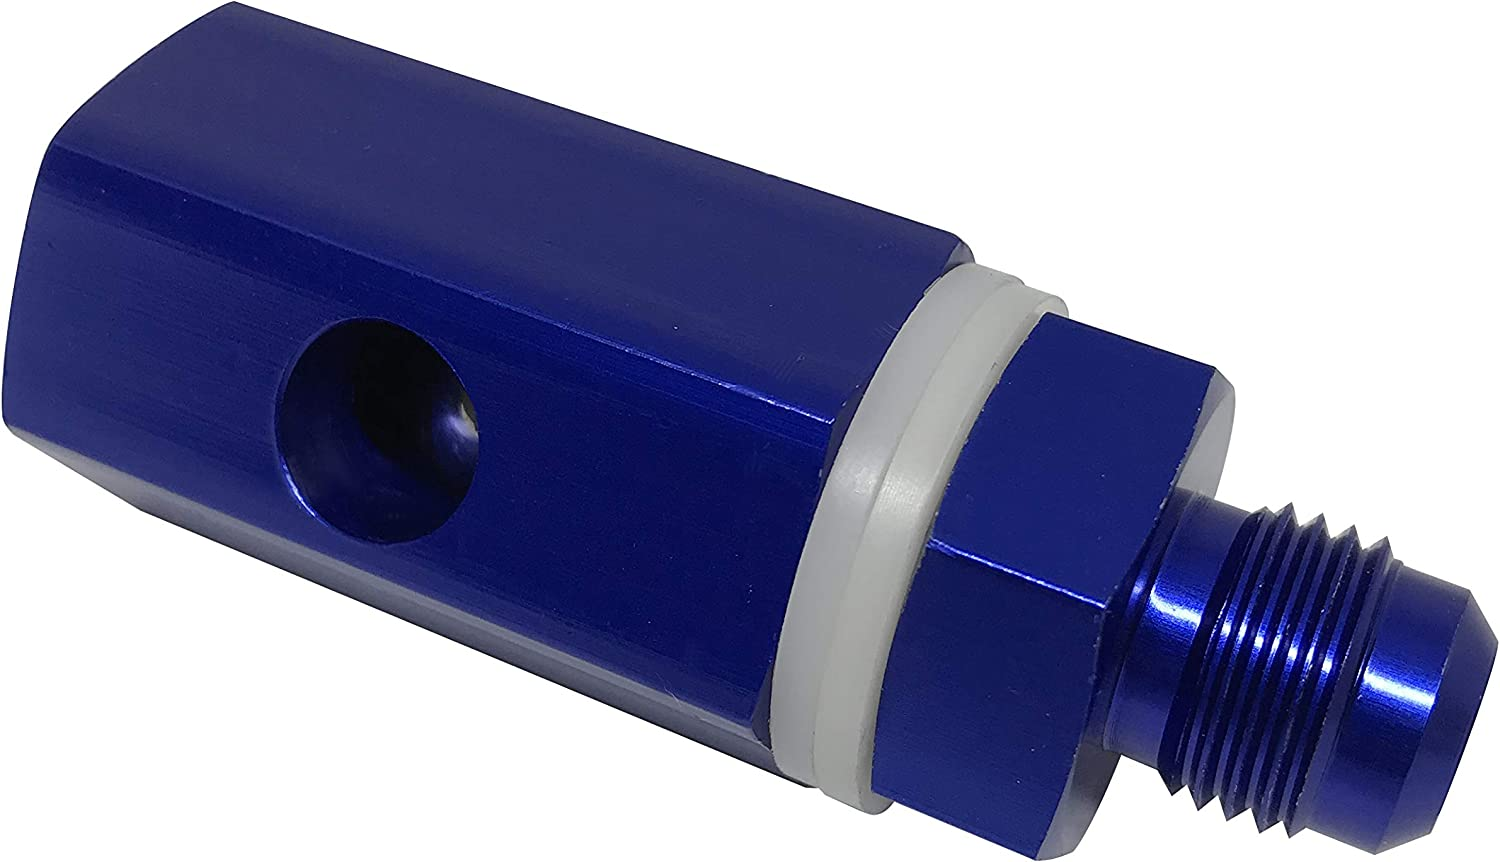 6AN Rollover Valve Aluminum Fuel Cell Tank Mounted Hose Line Fitting AN6 Tip Over Valves Blue Anodized